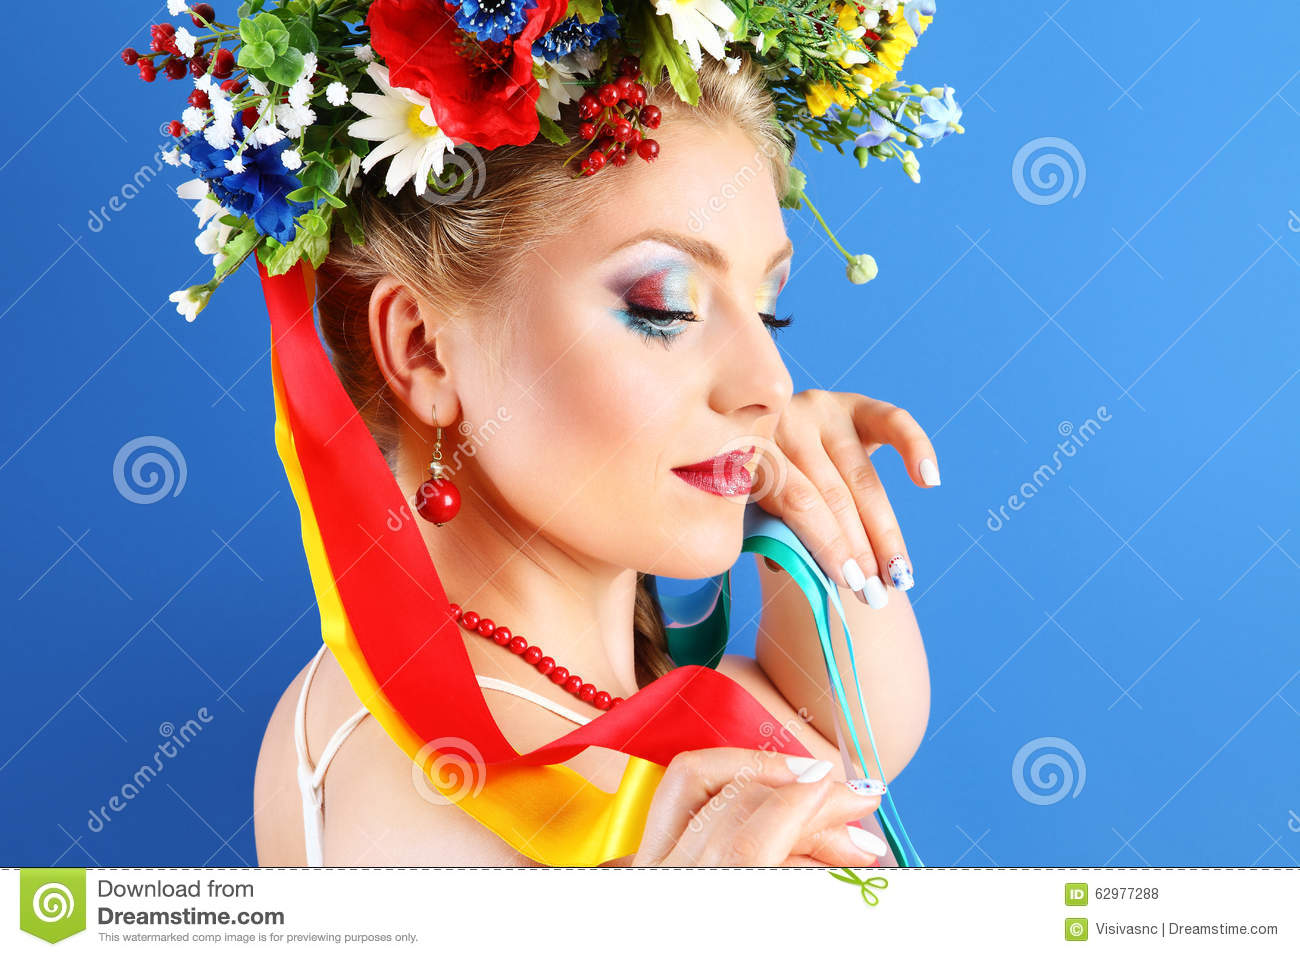 Portrait woman makeup with flowers on blue background